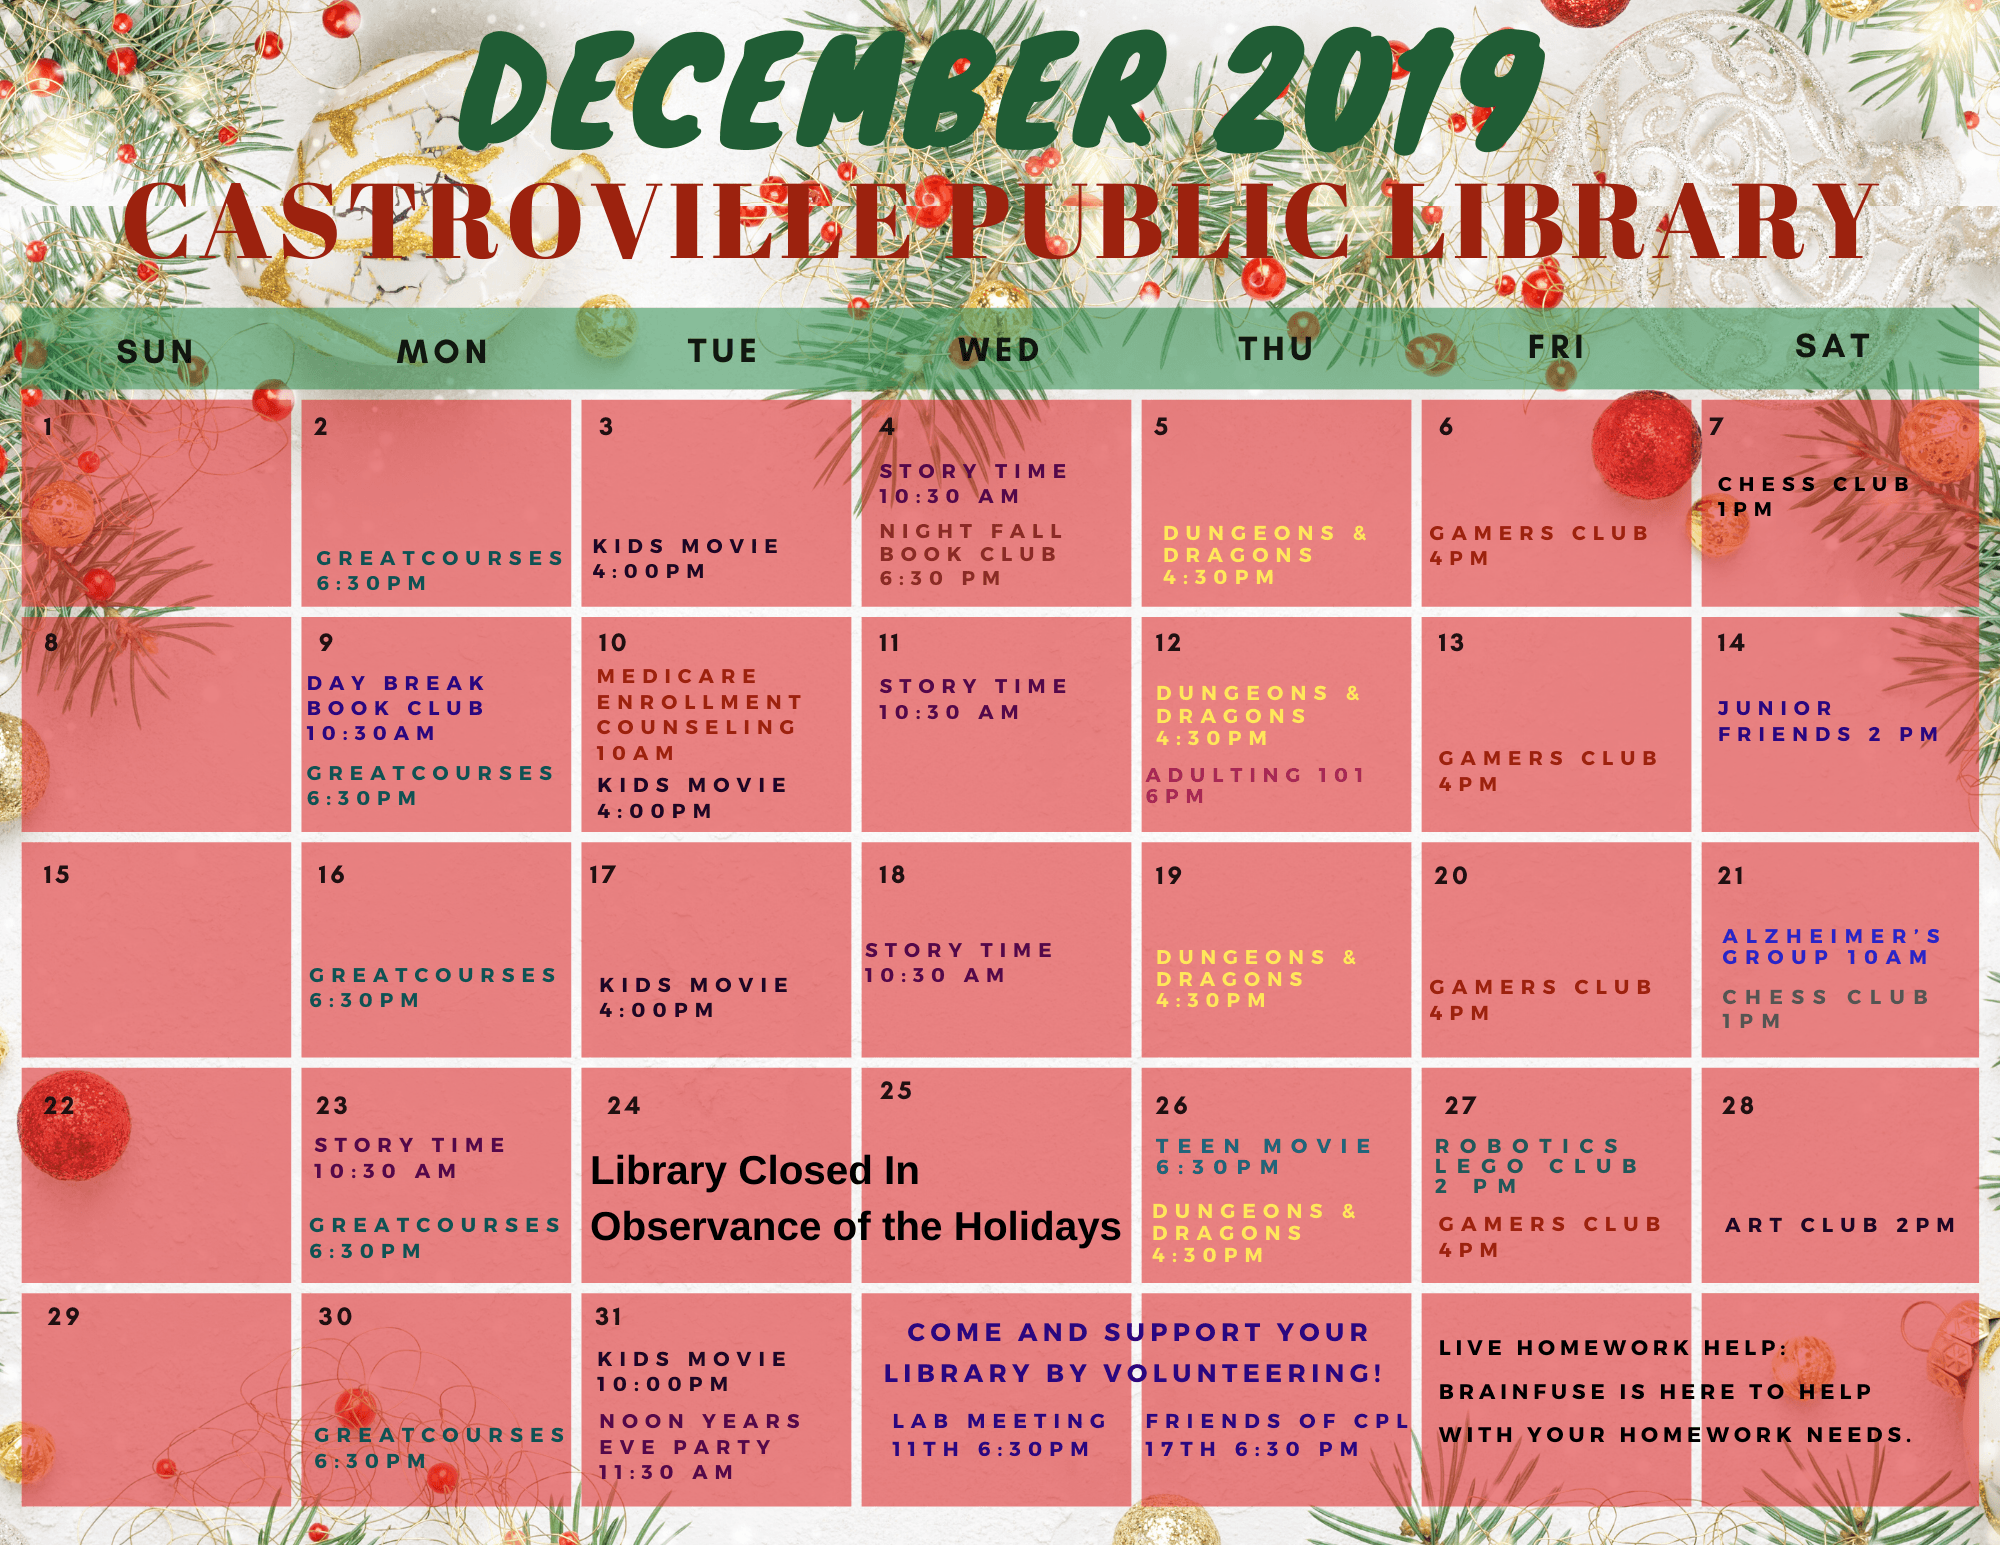 December 2019 Events